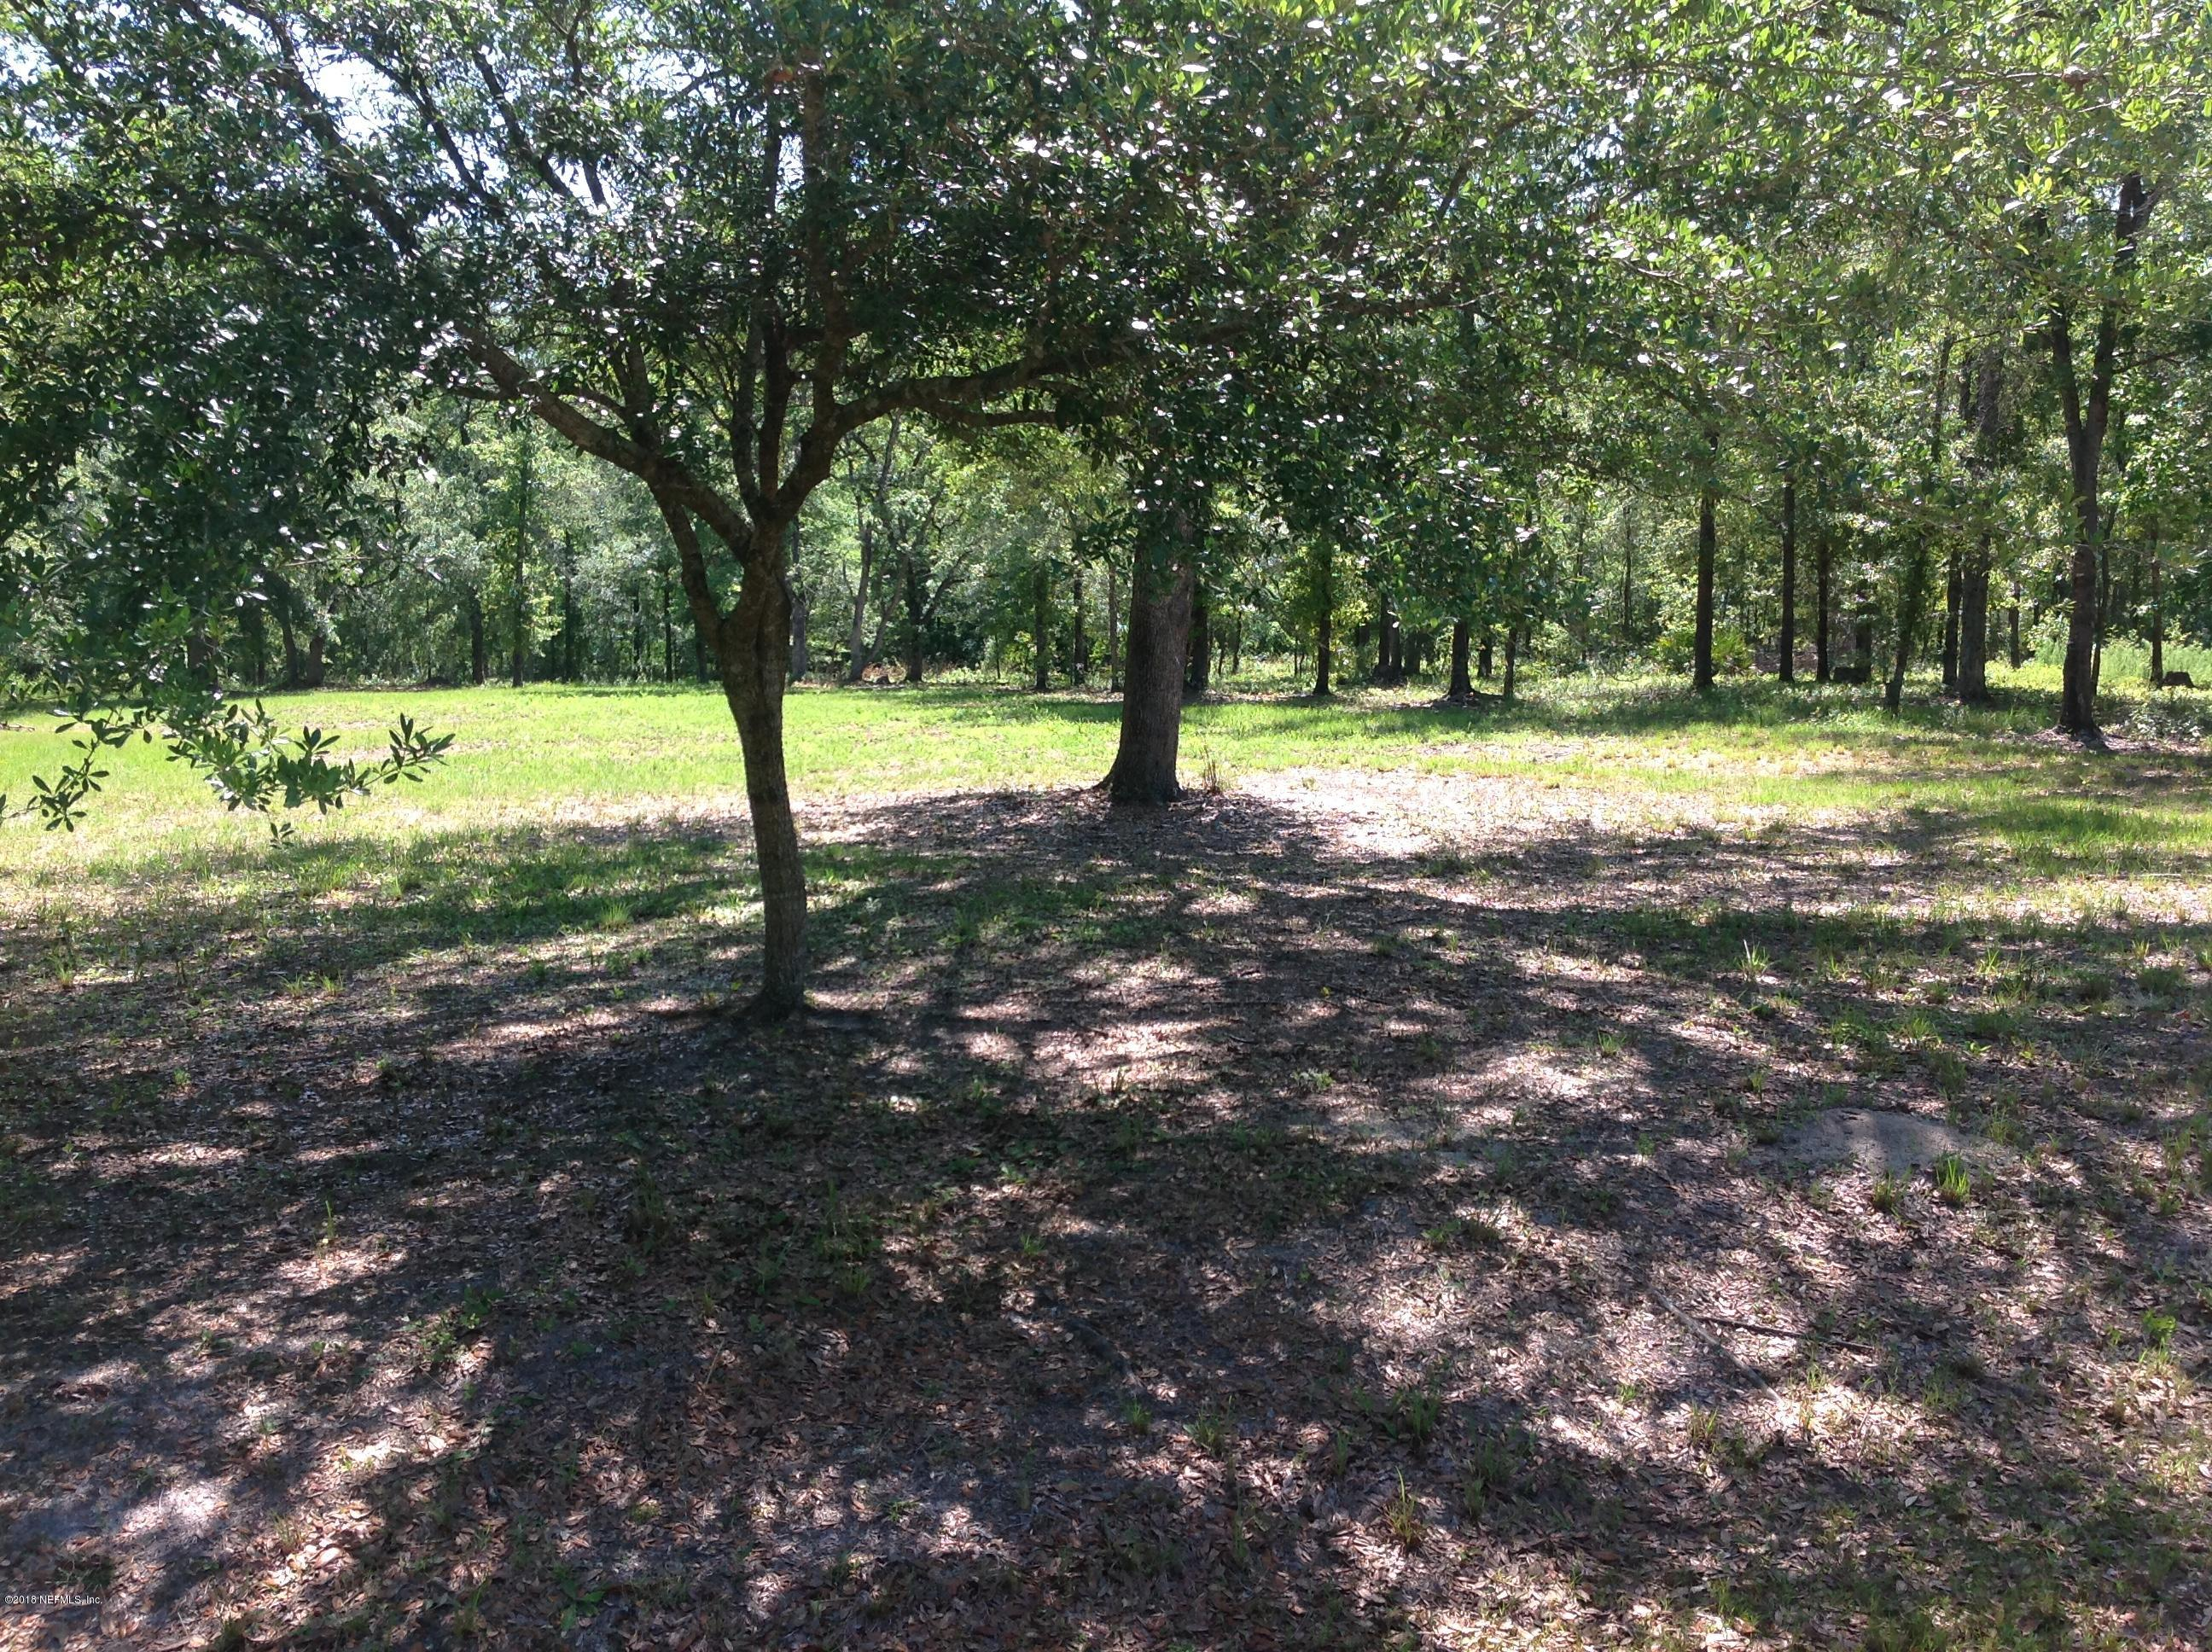 0 AZTEC, GLEN ST. MARY, FLORIDA 32040, ,Vacant land,For sale,AZTEC,934062